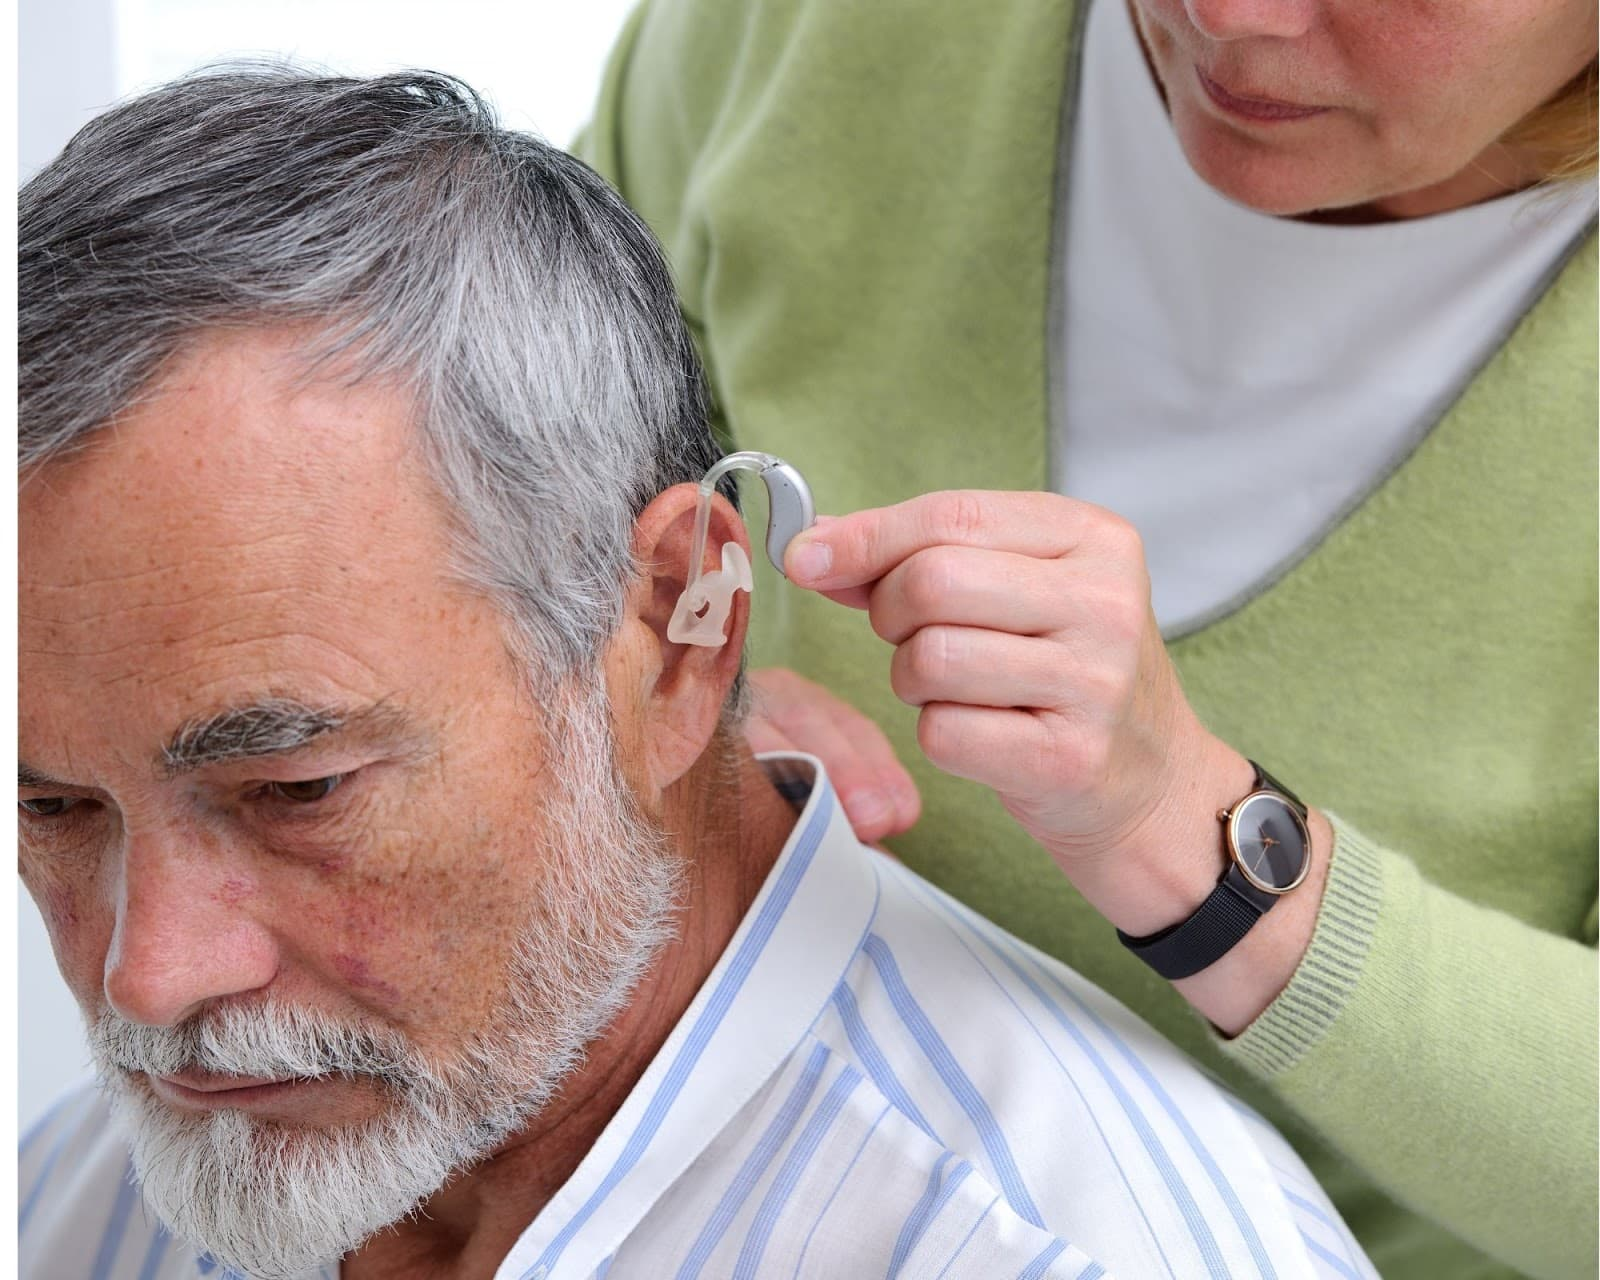 Replace Or Repair Your Damaged Hearing Aid